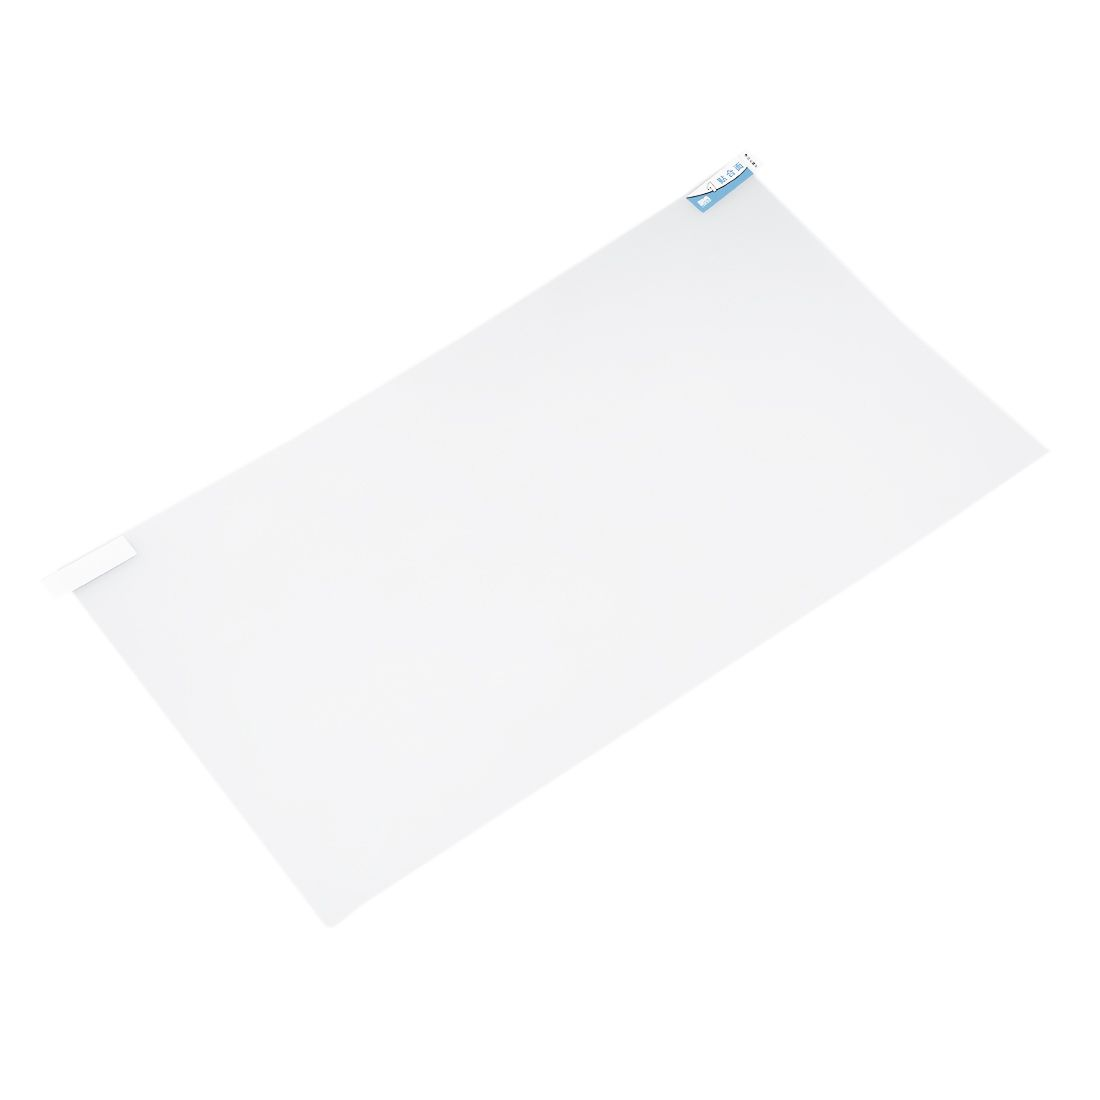 COOSKIN 15.6 inch Anti glare Screen Protector for Laptop Dispaly 16:9 Transparent - title=